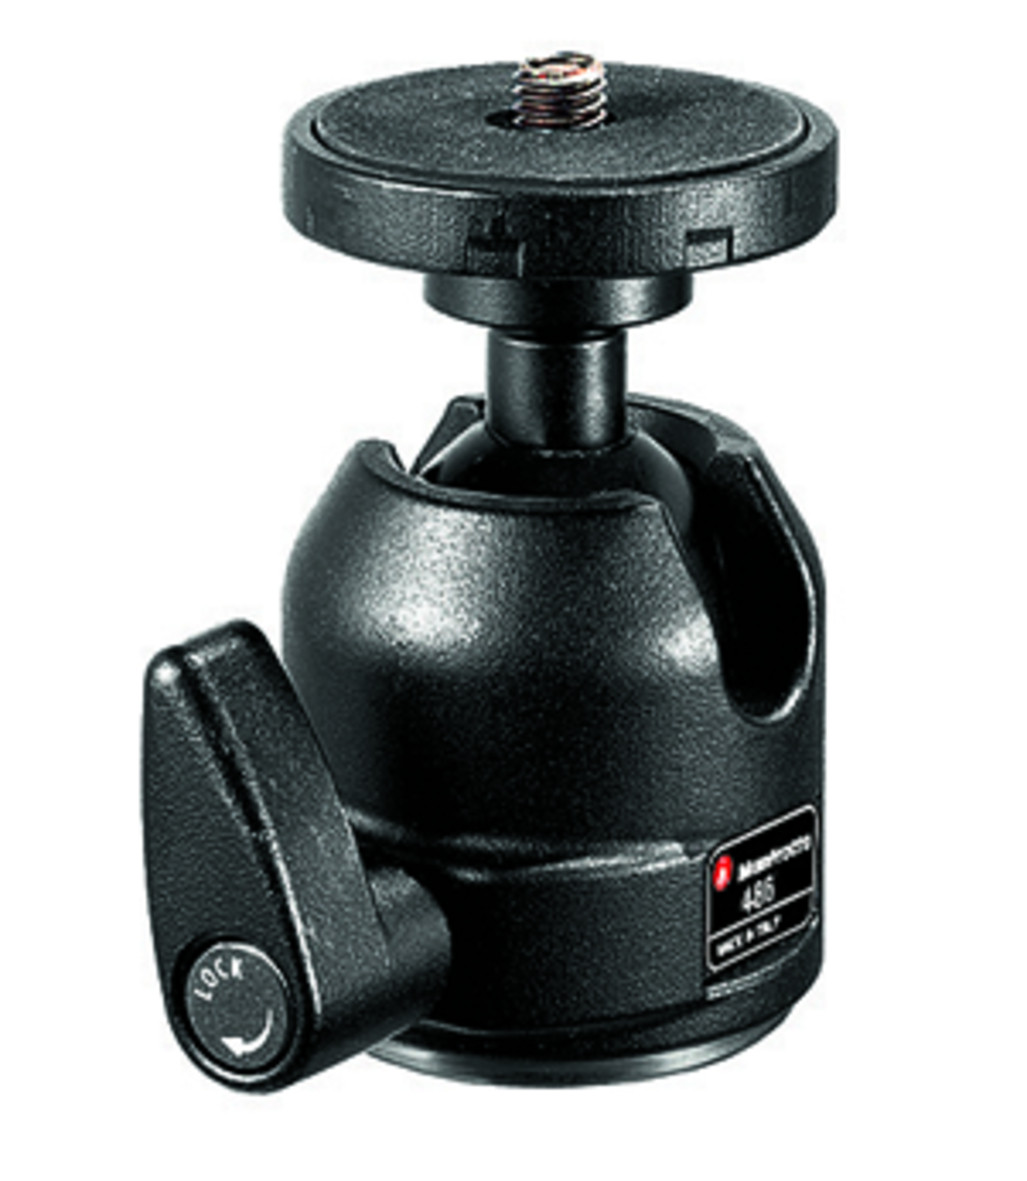 Голова для штатива Manfrotto 486